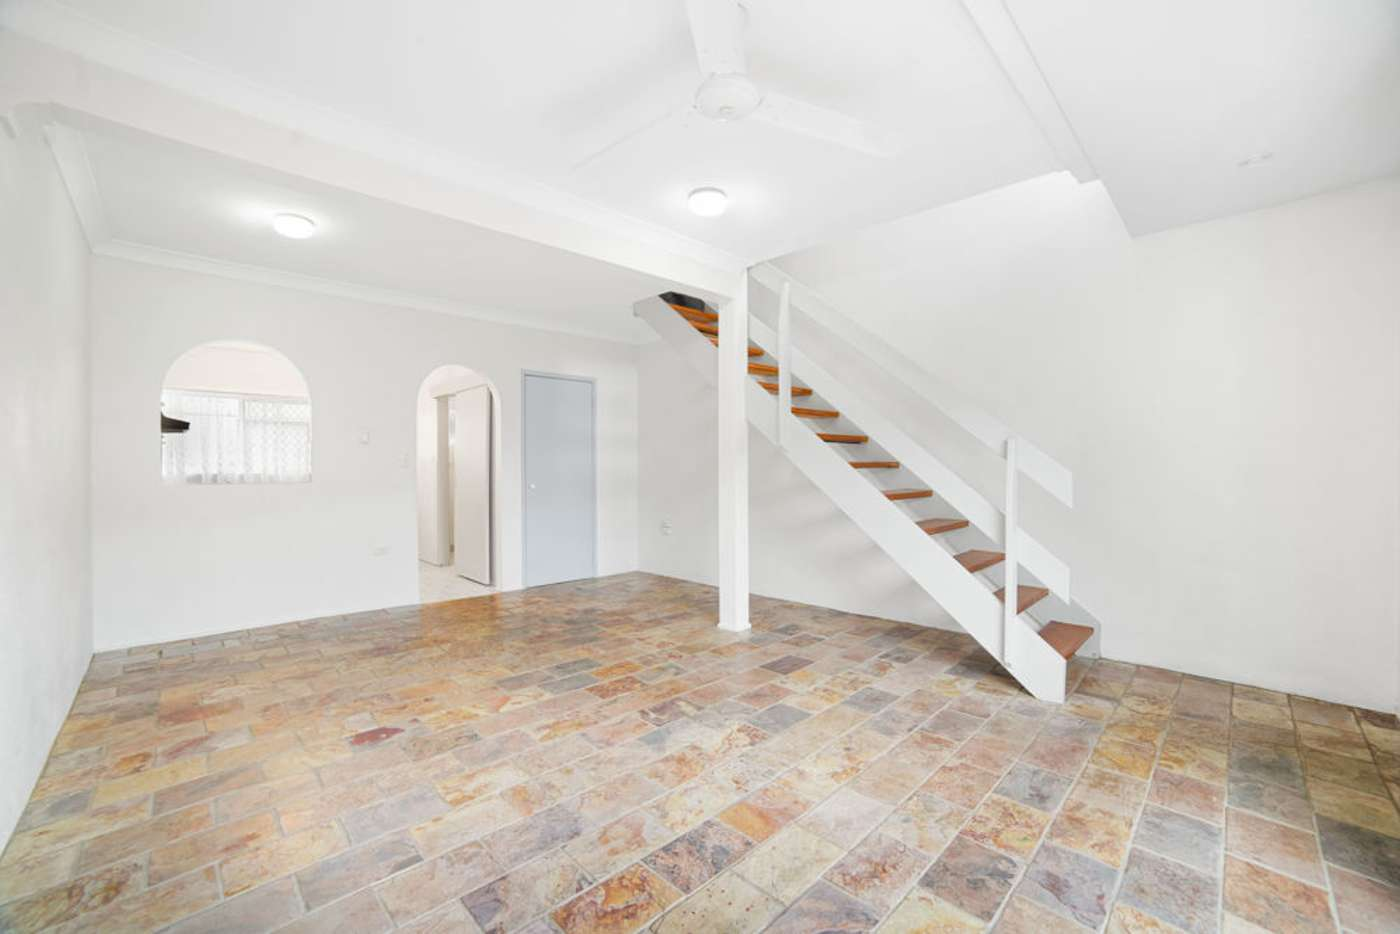 Main view of Homely townhouse listing, 11/28-30 Fairweather Street, Yorkeys Knob QLD 4878